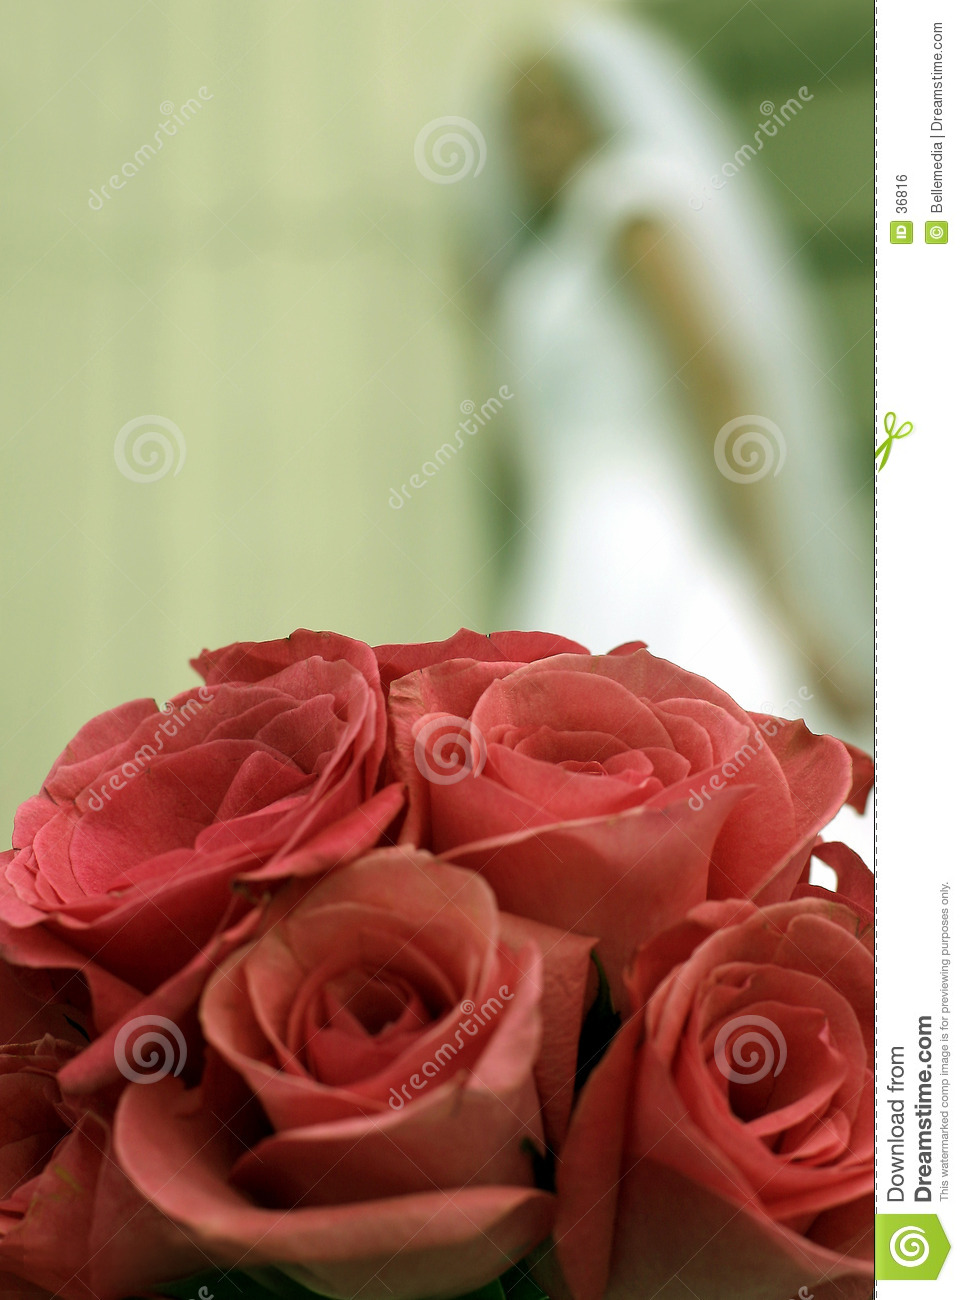 Wedding flowers and roses